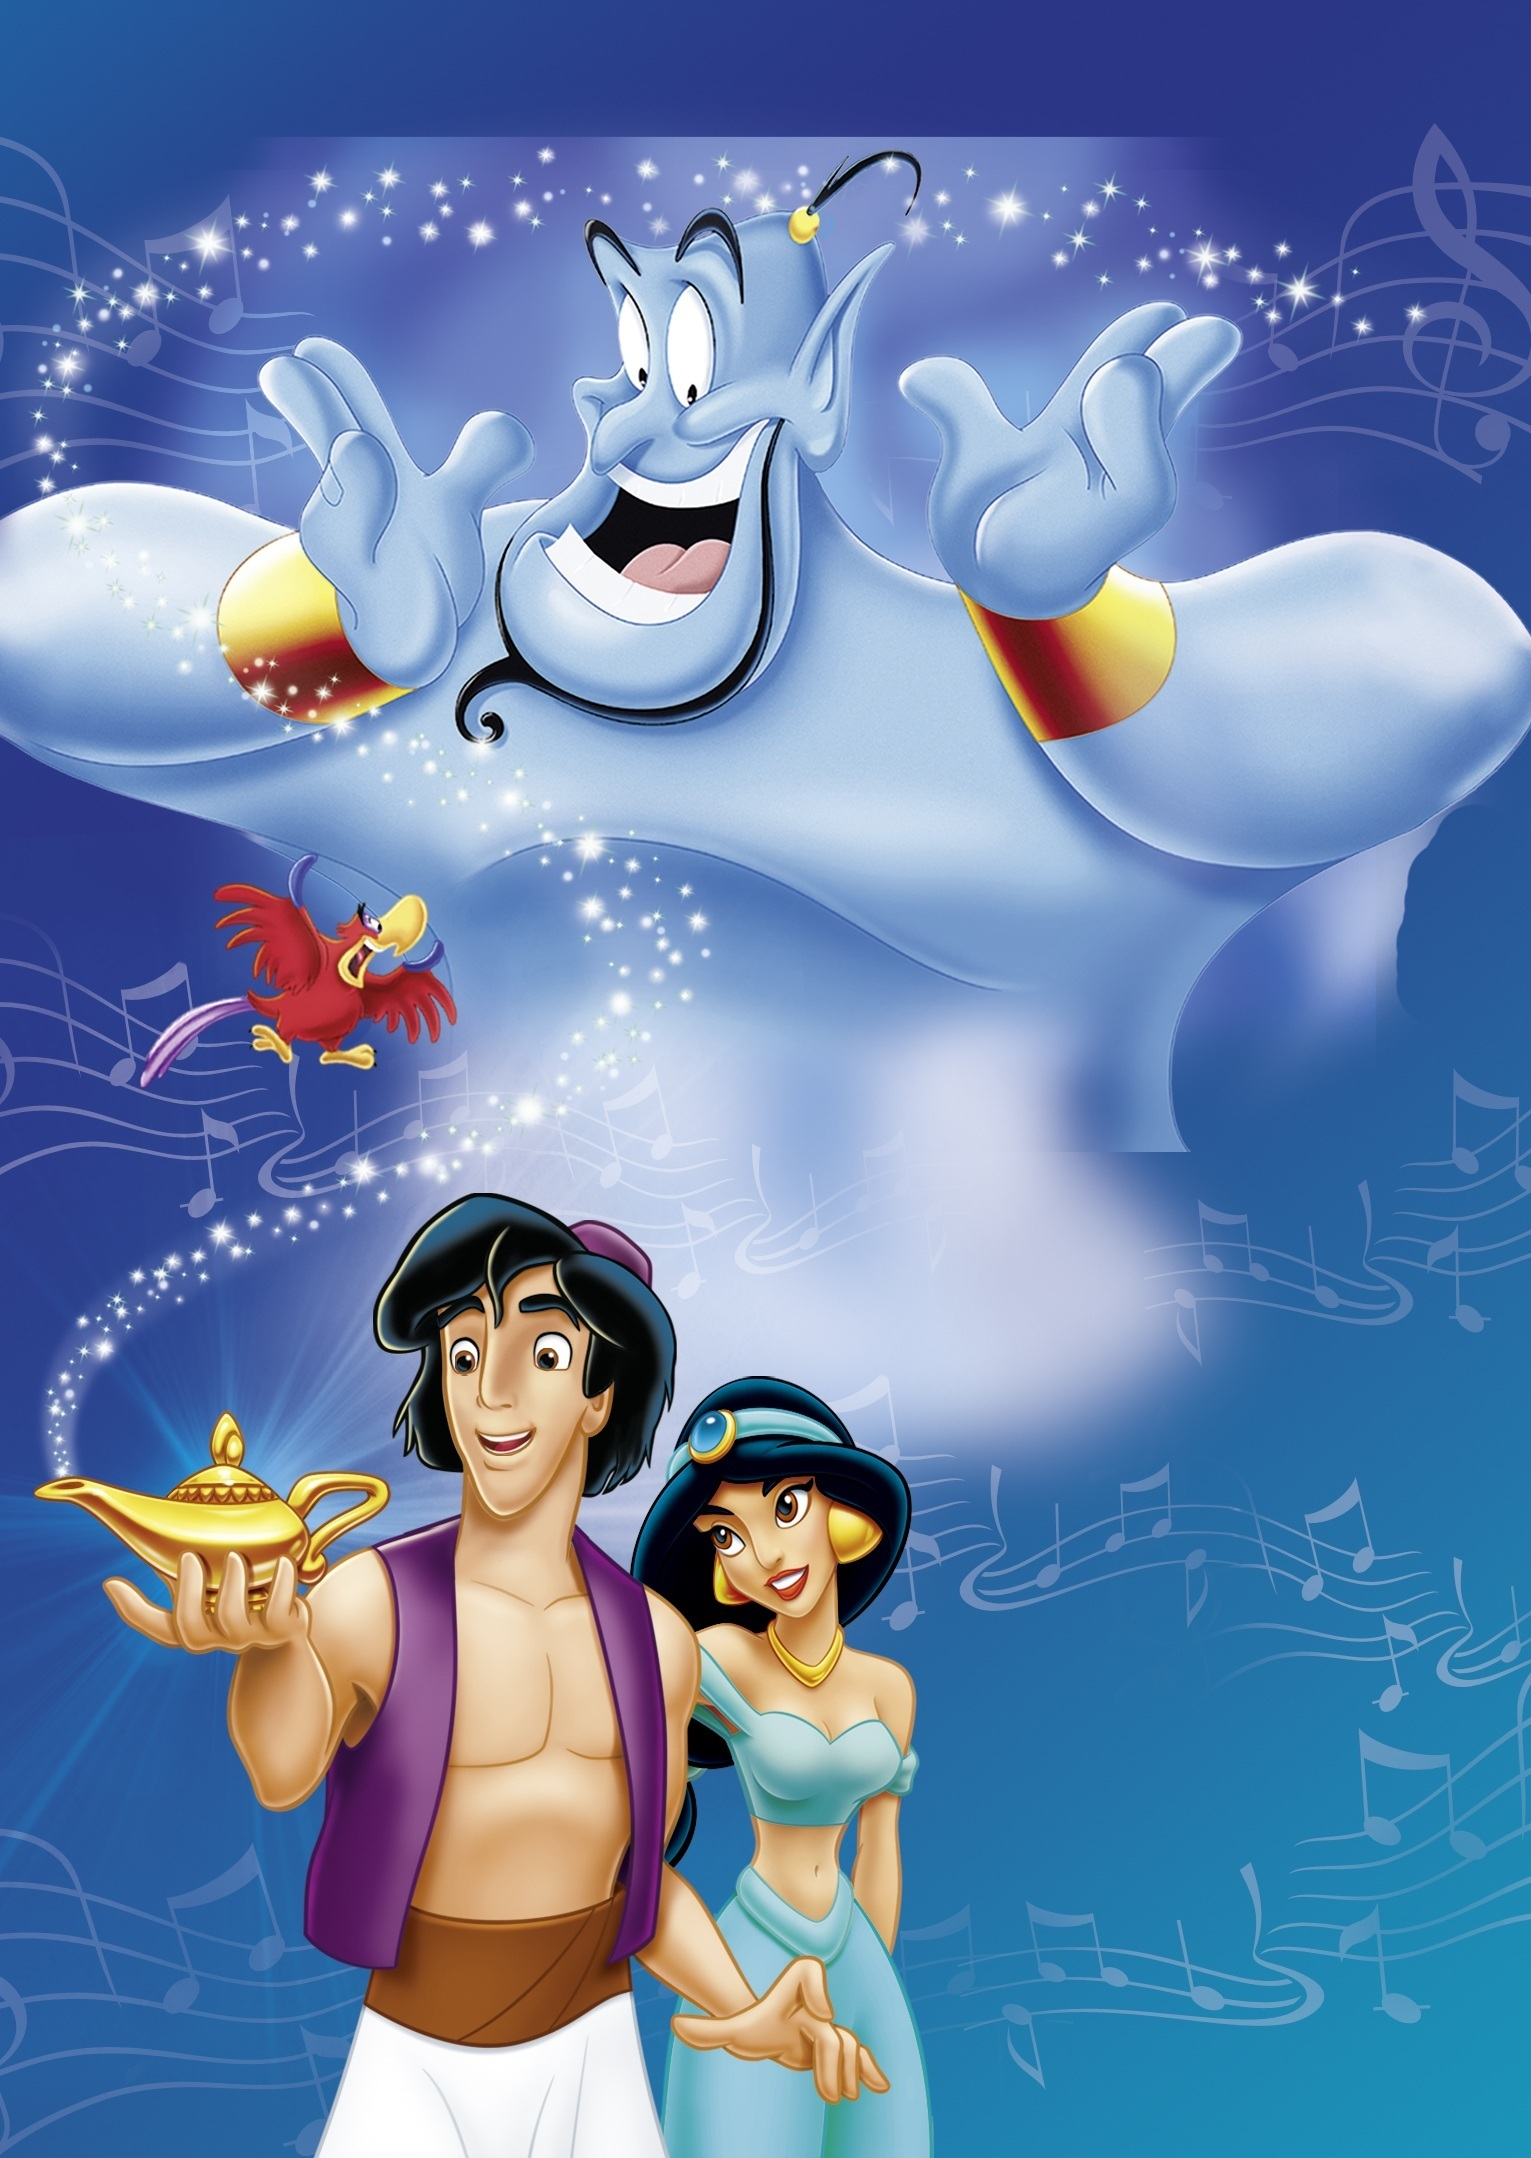 Aladdin Wallpapers High Quality | Download Free for Aladdin Wallpaper Iphone  181pct